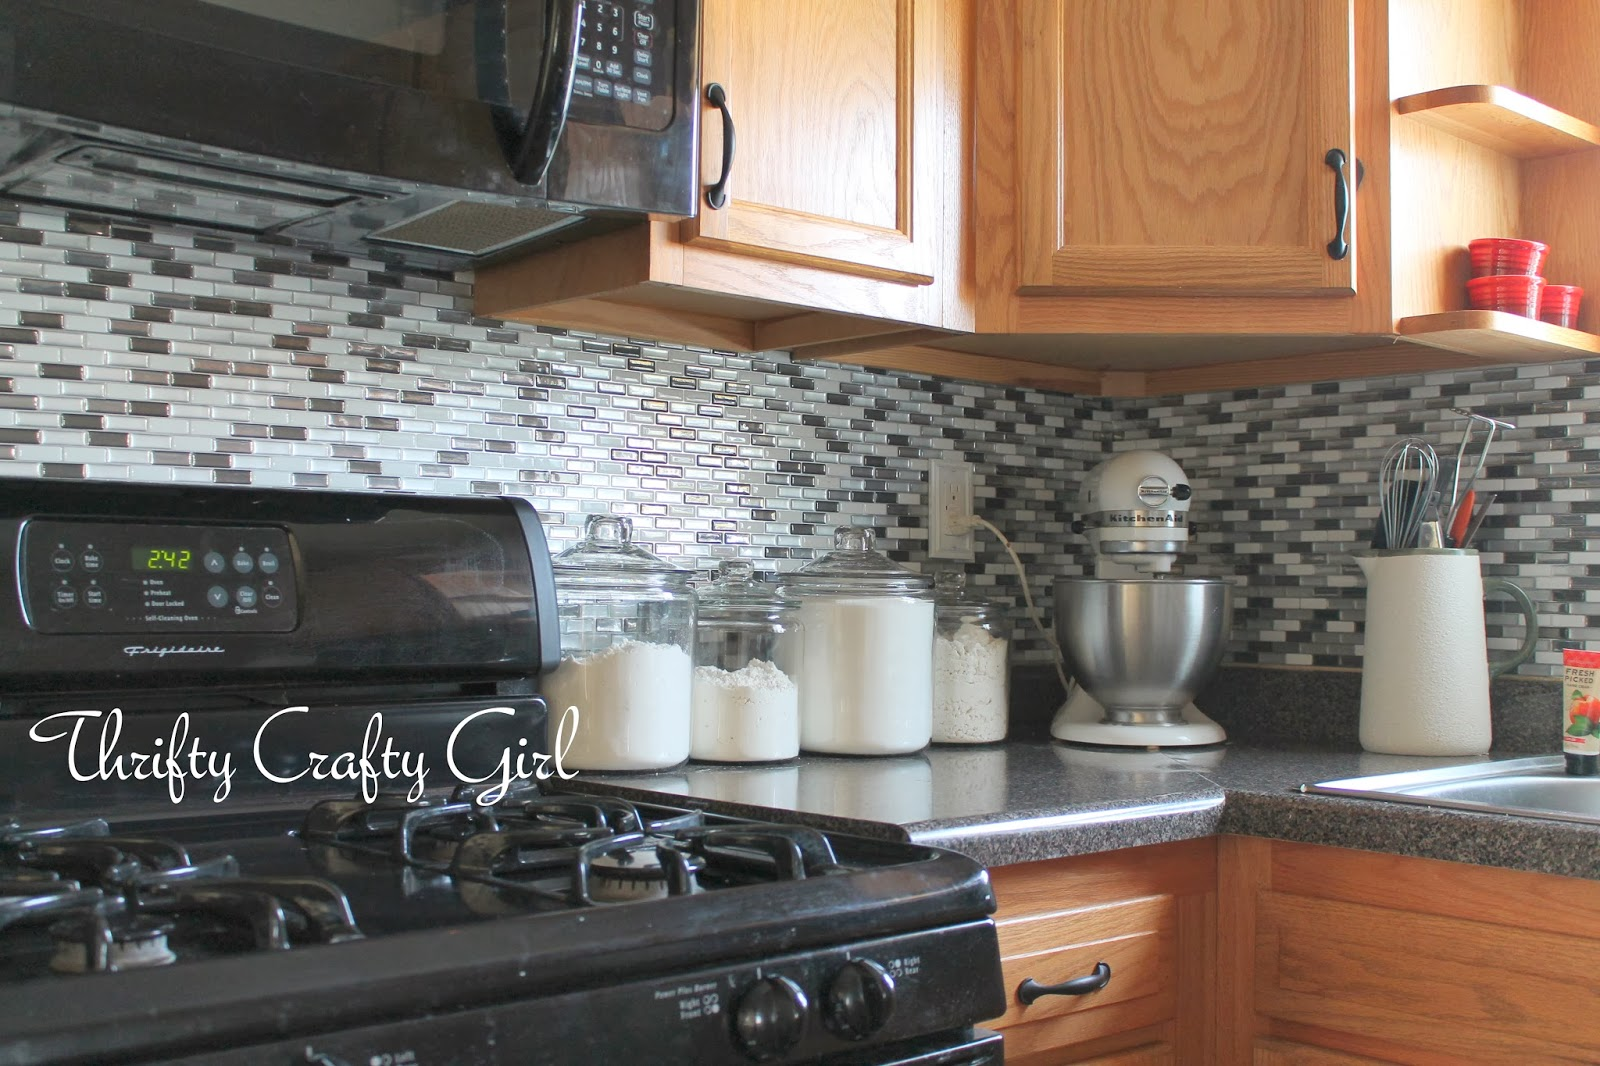 Lovely Thrifty Crafty Girl: Easy Kitchen Backsplash with Smart Tiles WS77